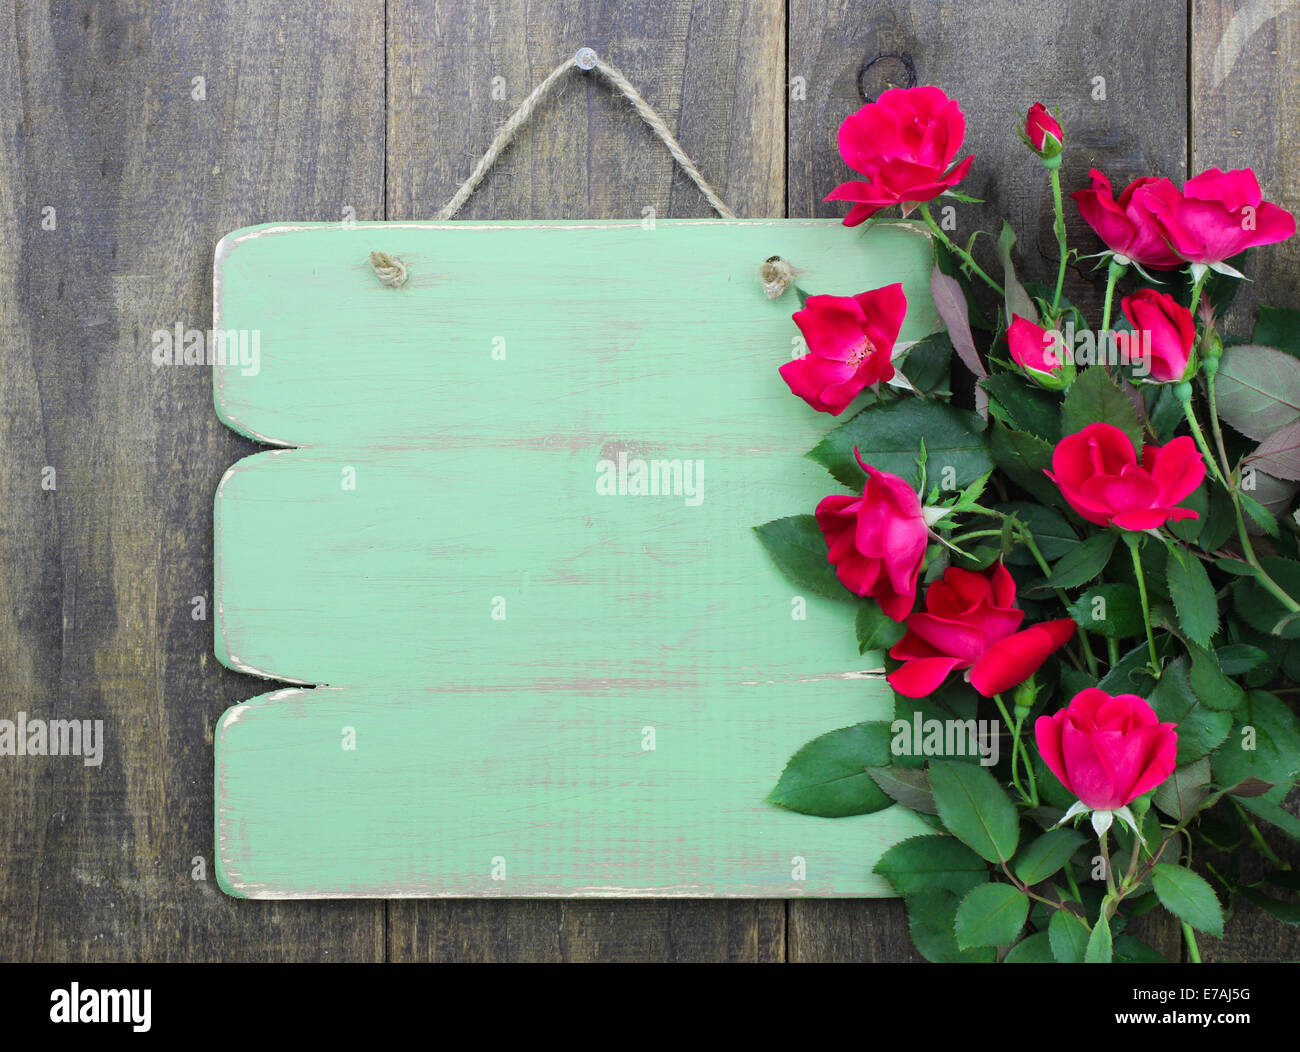 Distressed Blank Green Sign With Flower Border Of Red Roses Hanging On Rustic Wood Background